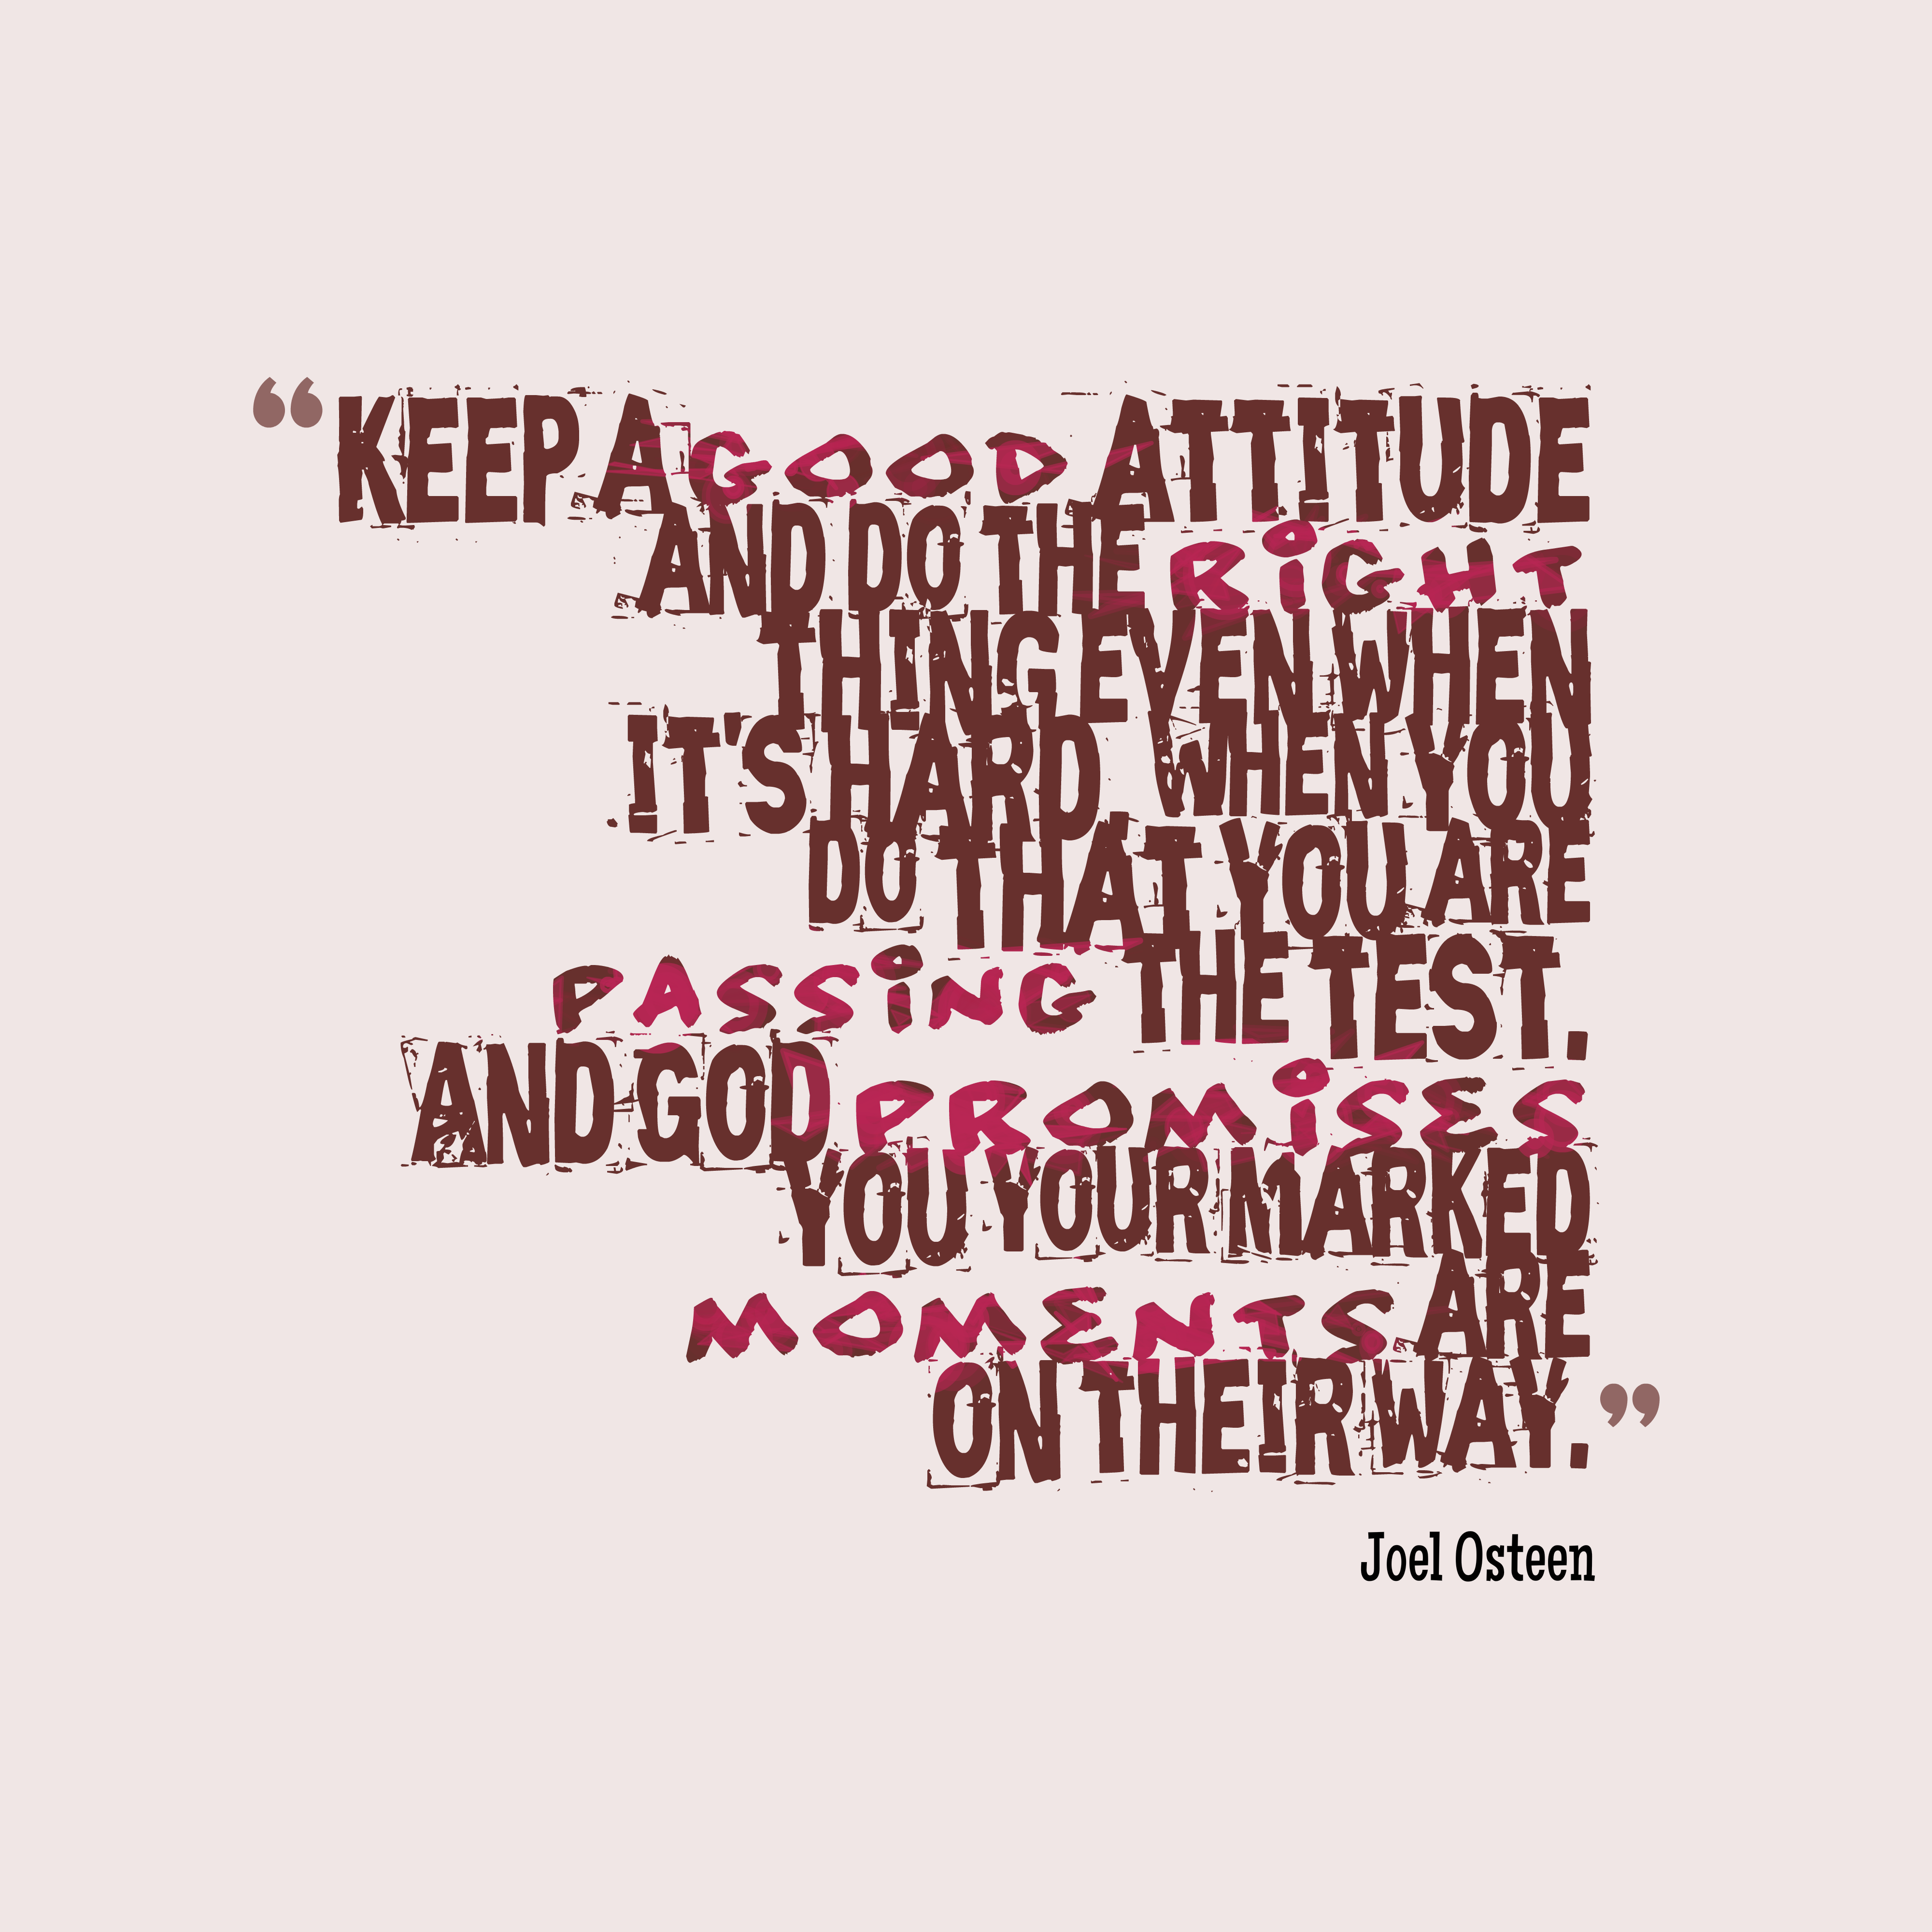 Joel Osteen Quote About Attitude